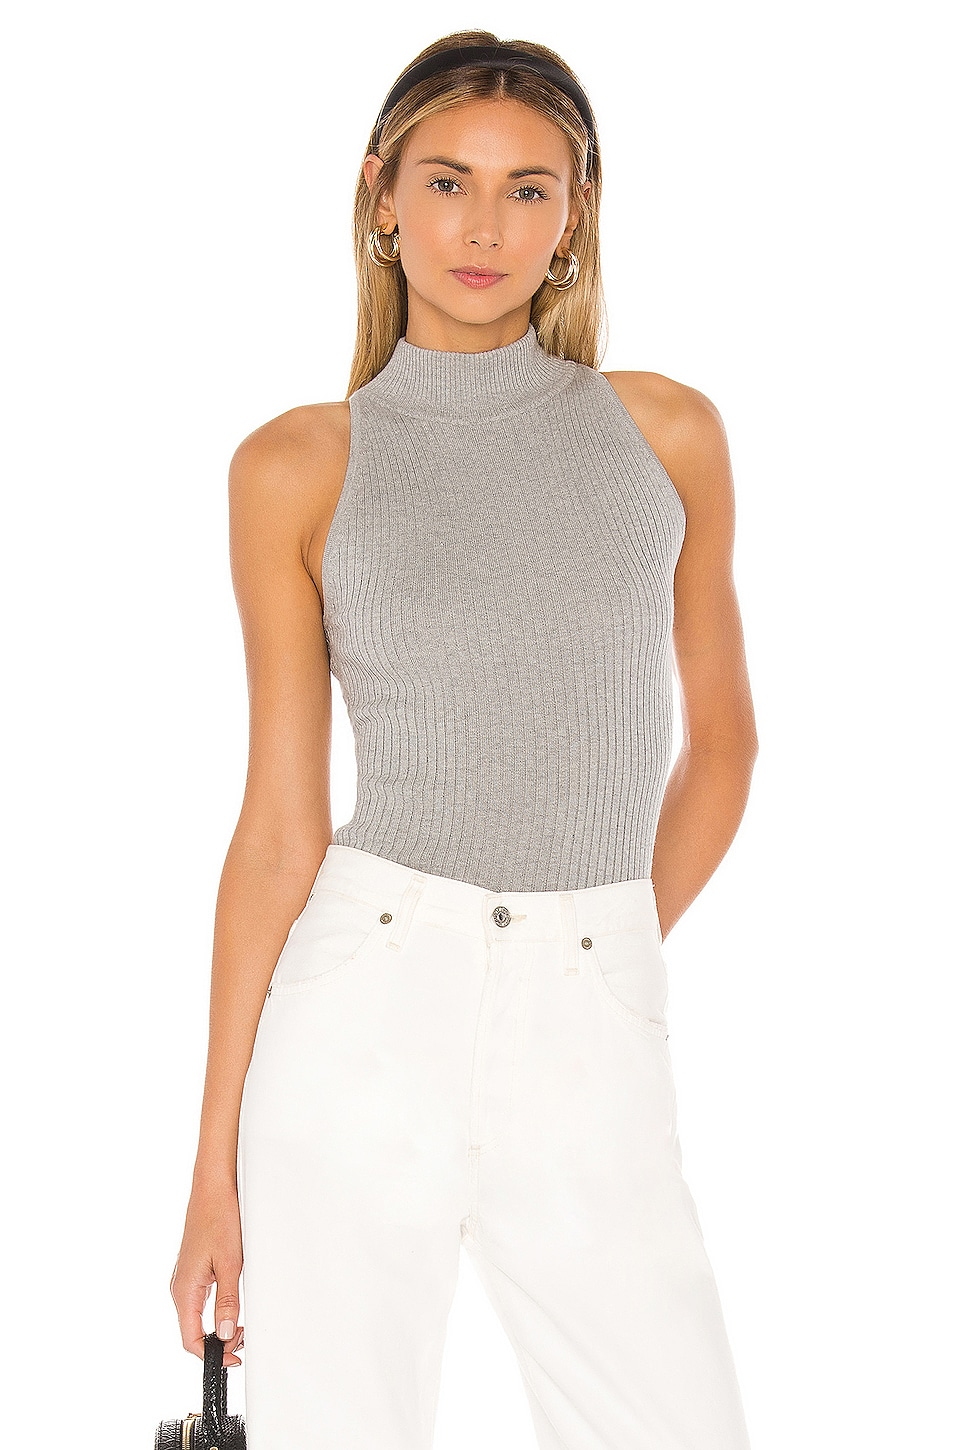 Autumn Cashmere Rib Mock Halter in Sweatshirt